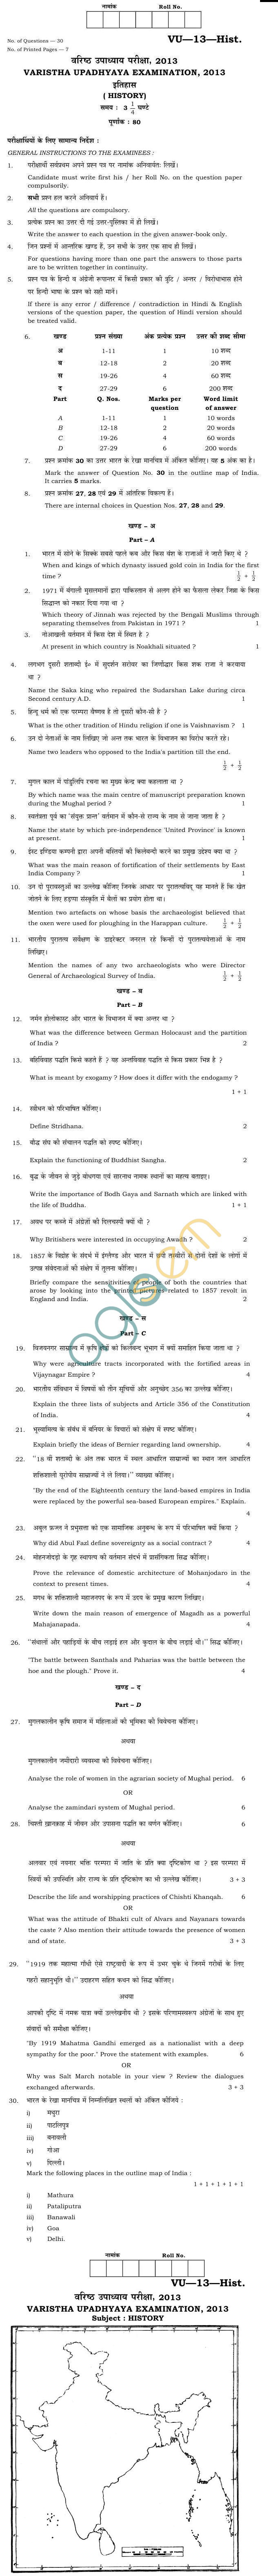 Rajasthan Board V Upadhyay History Question Paper 2013